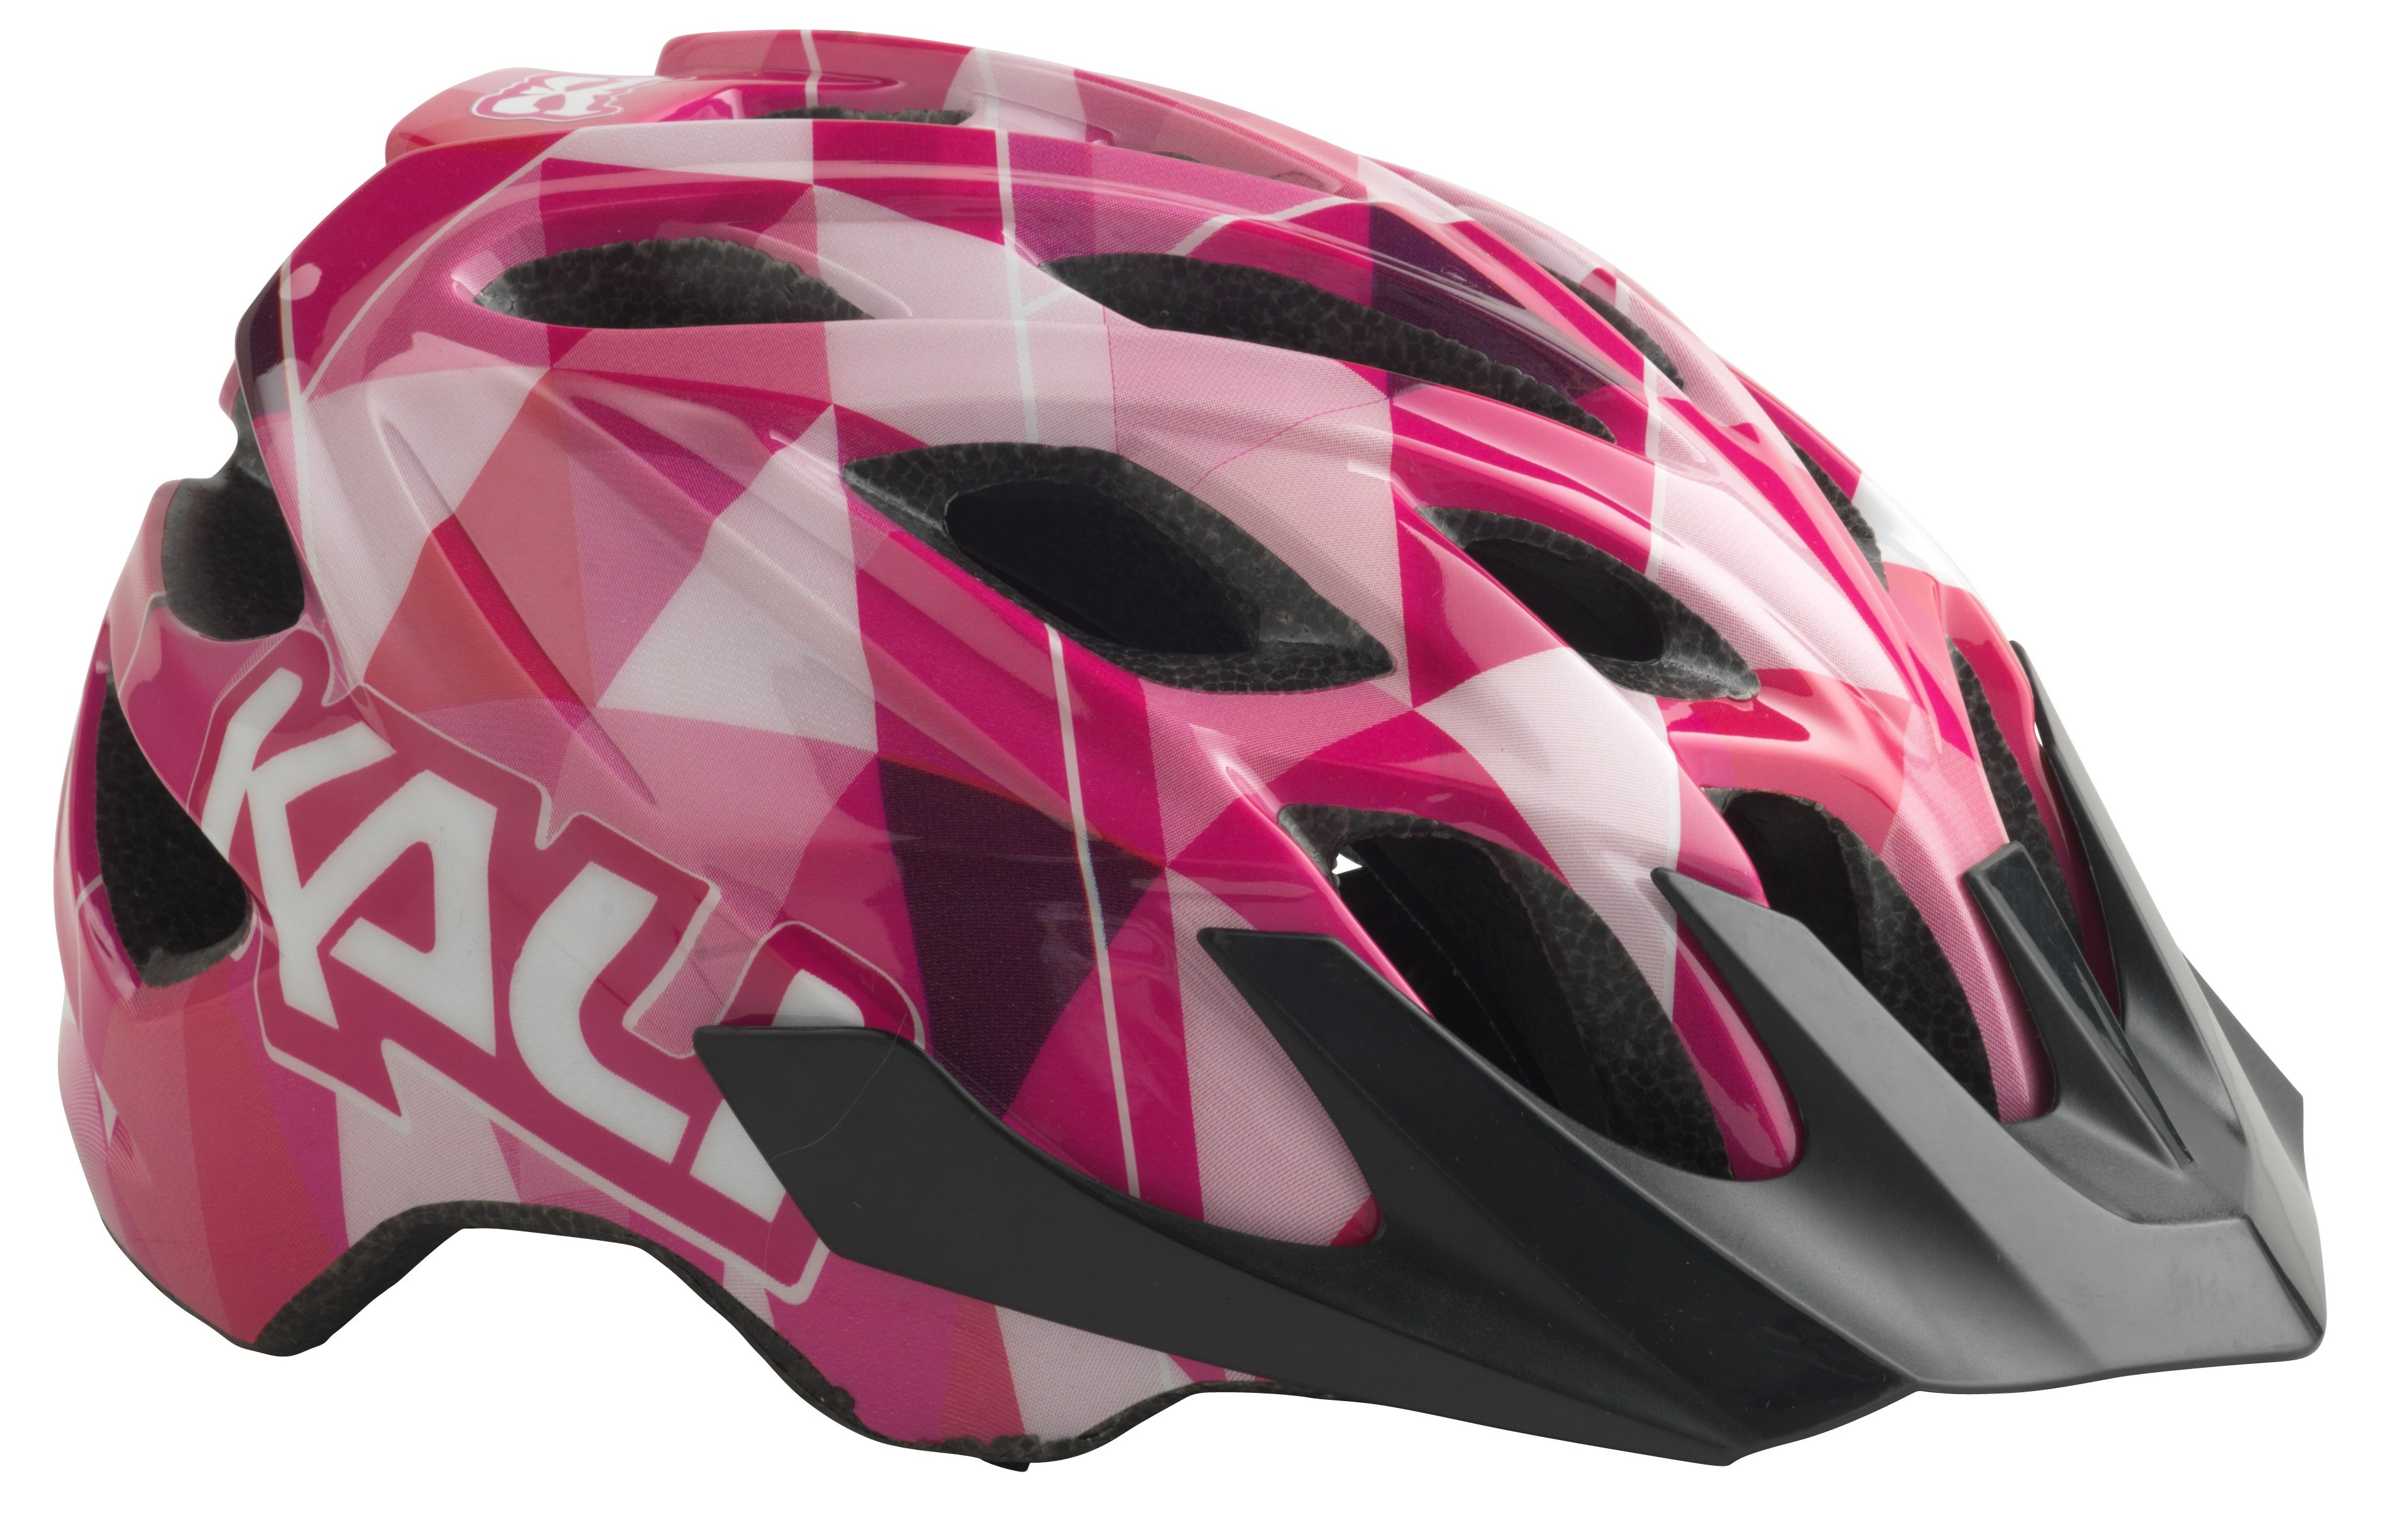 Kali Protectives Chakra Youth Diamond Bicycle Helmet